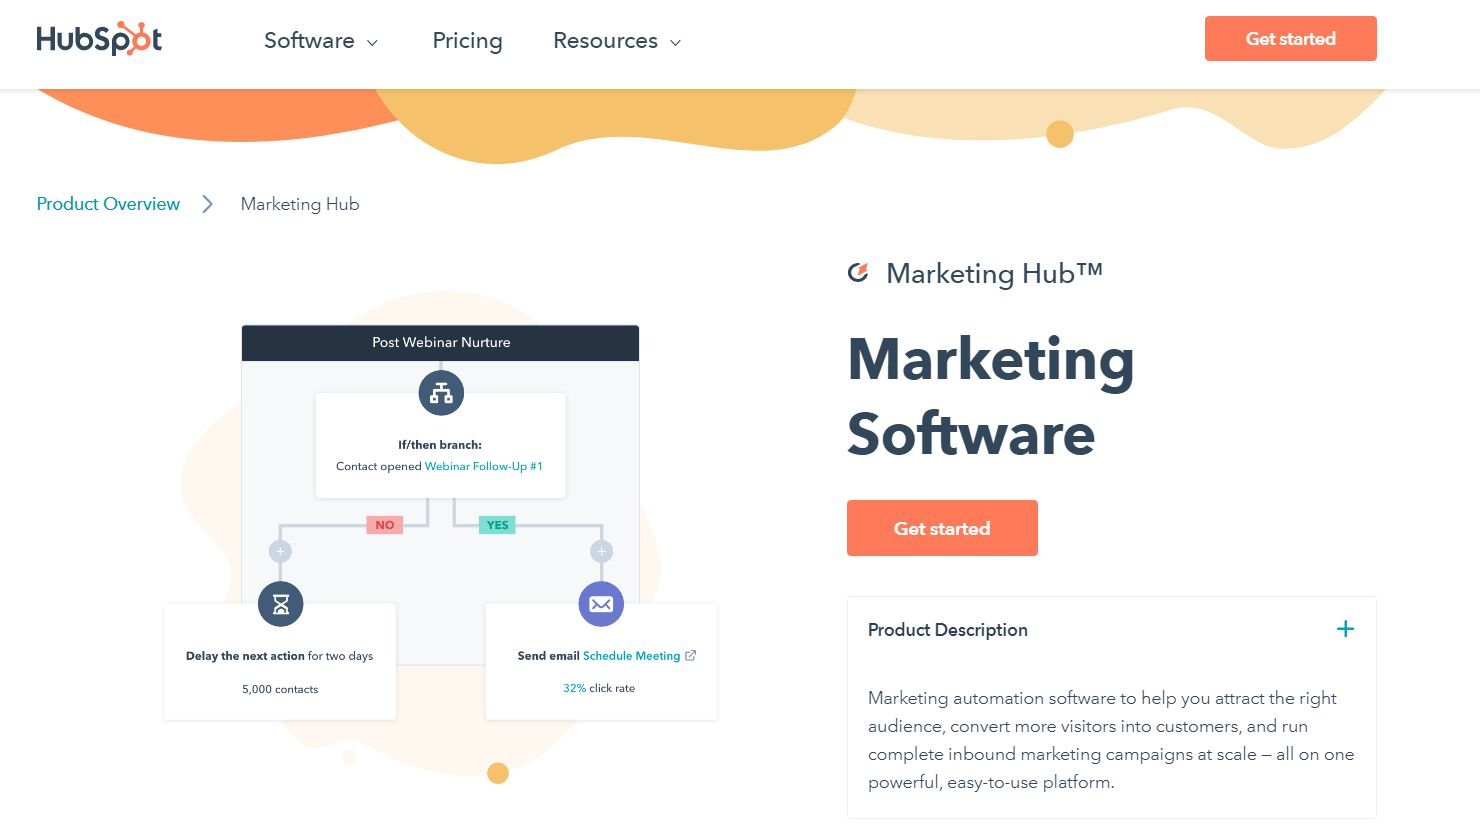 A screenshot of HubSpot's homepage